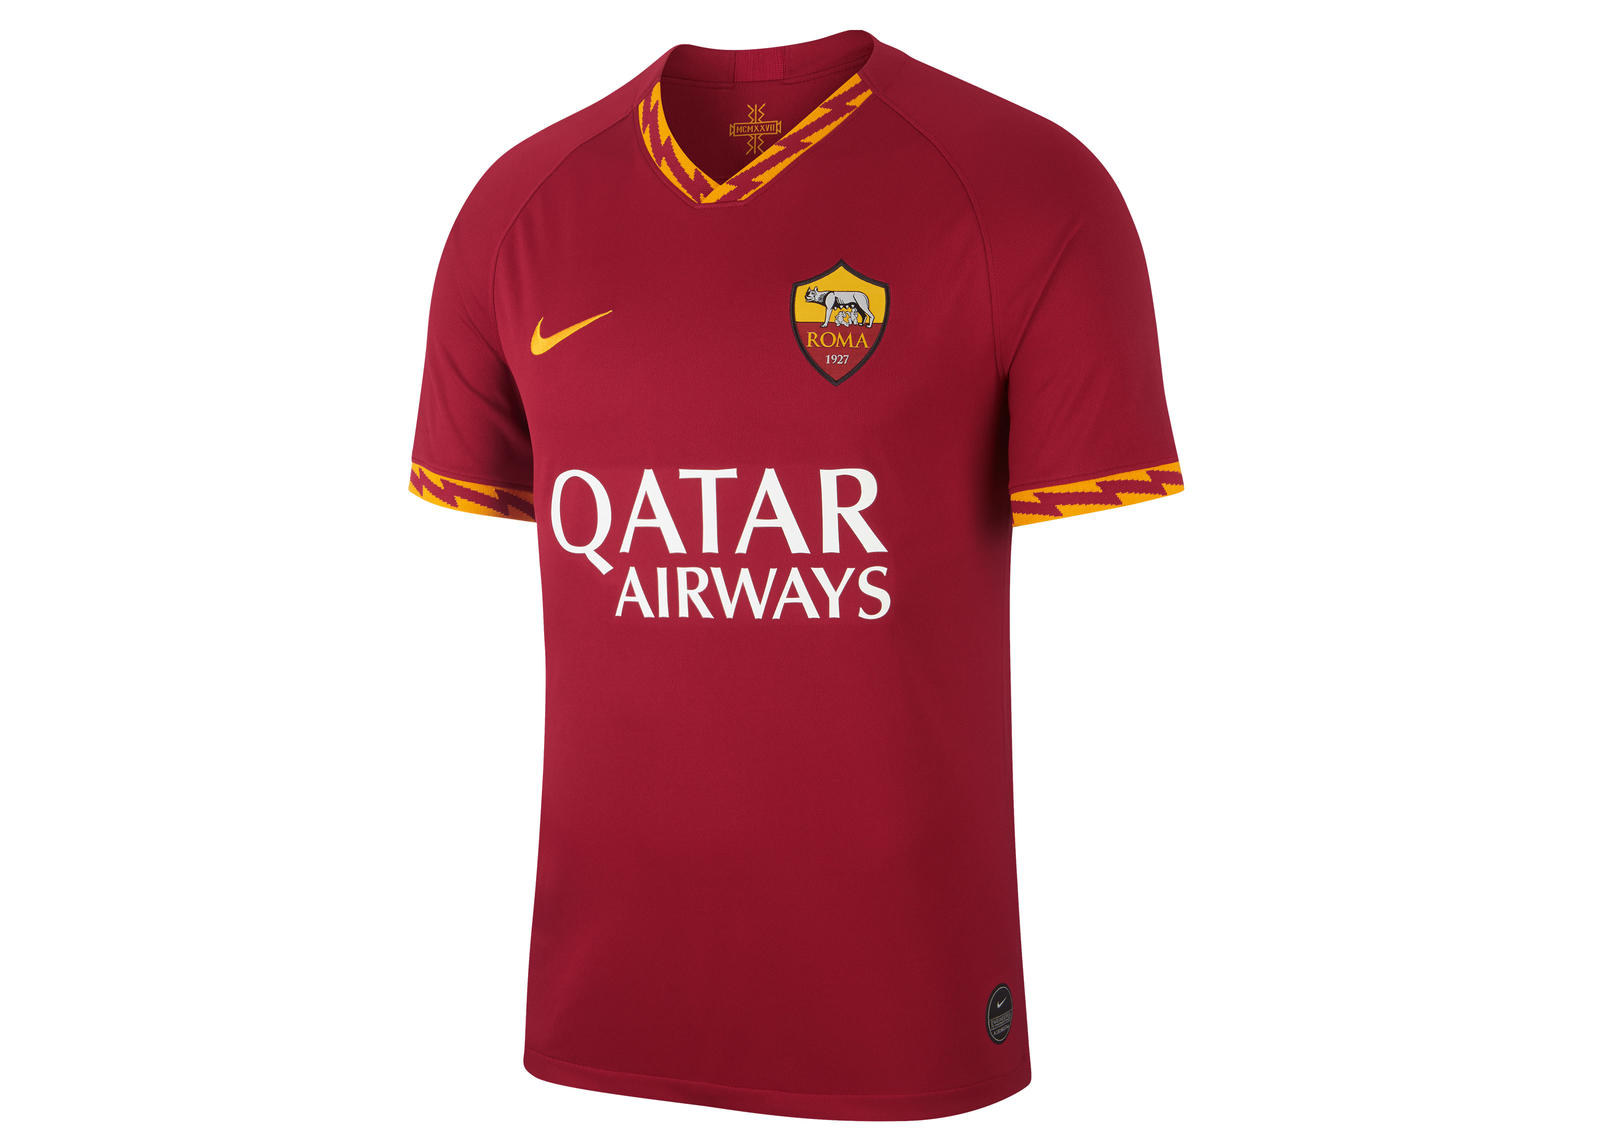 7ceaf9b2cc6 AS Roma 2019-20 Home Kit - Nike News